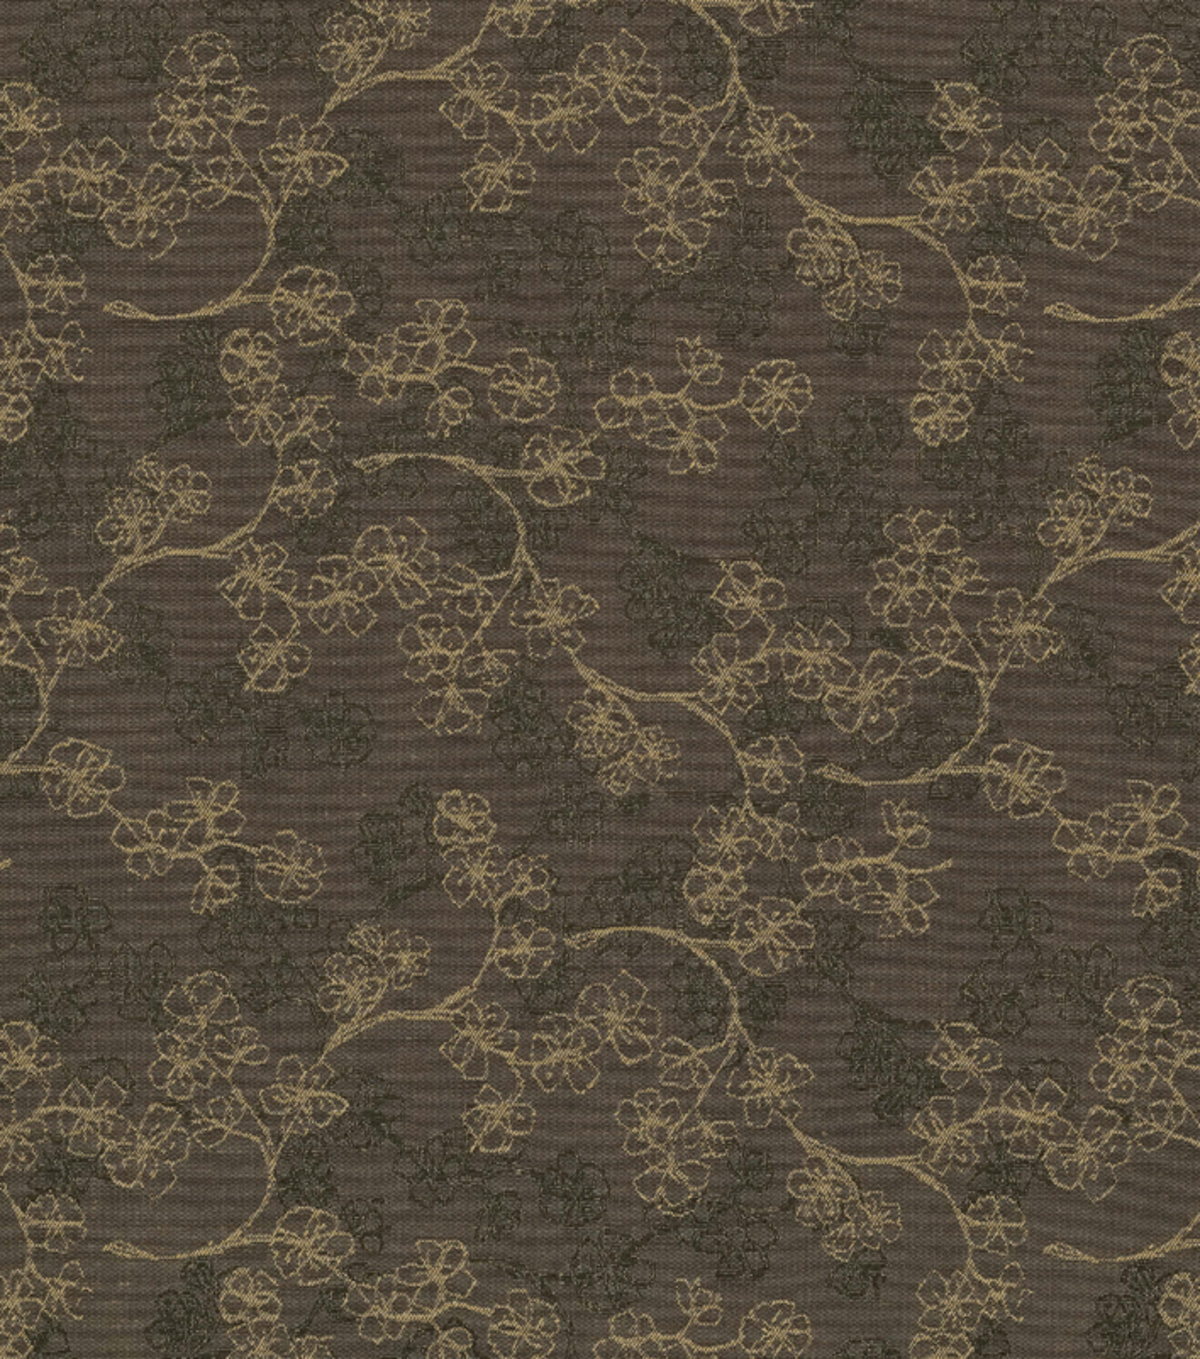 Home Decor 8\u0022x8\u0022 Fabric Swatch-Little Petals Gravel